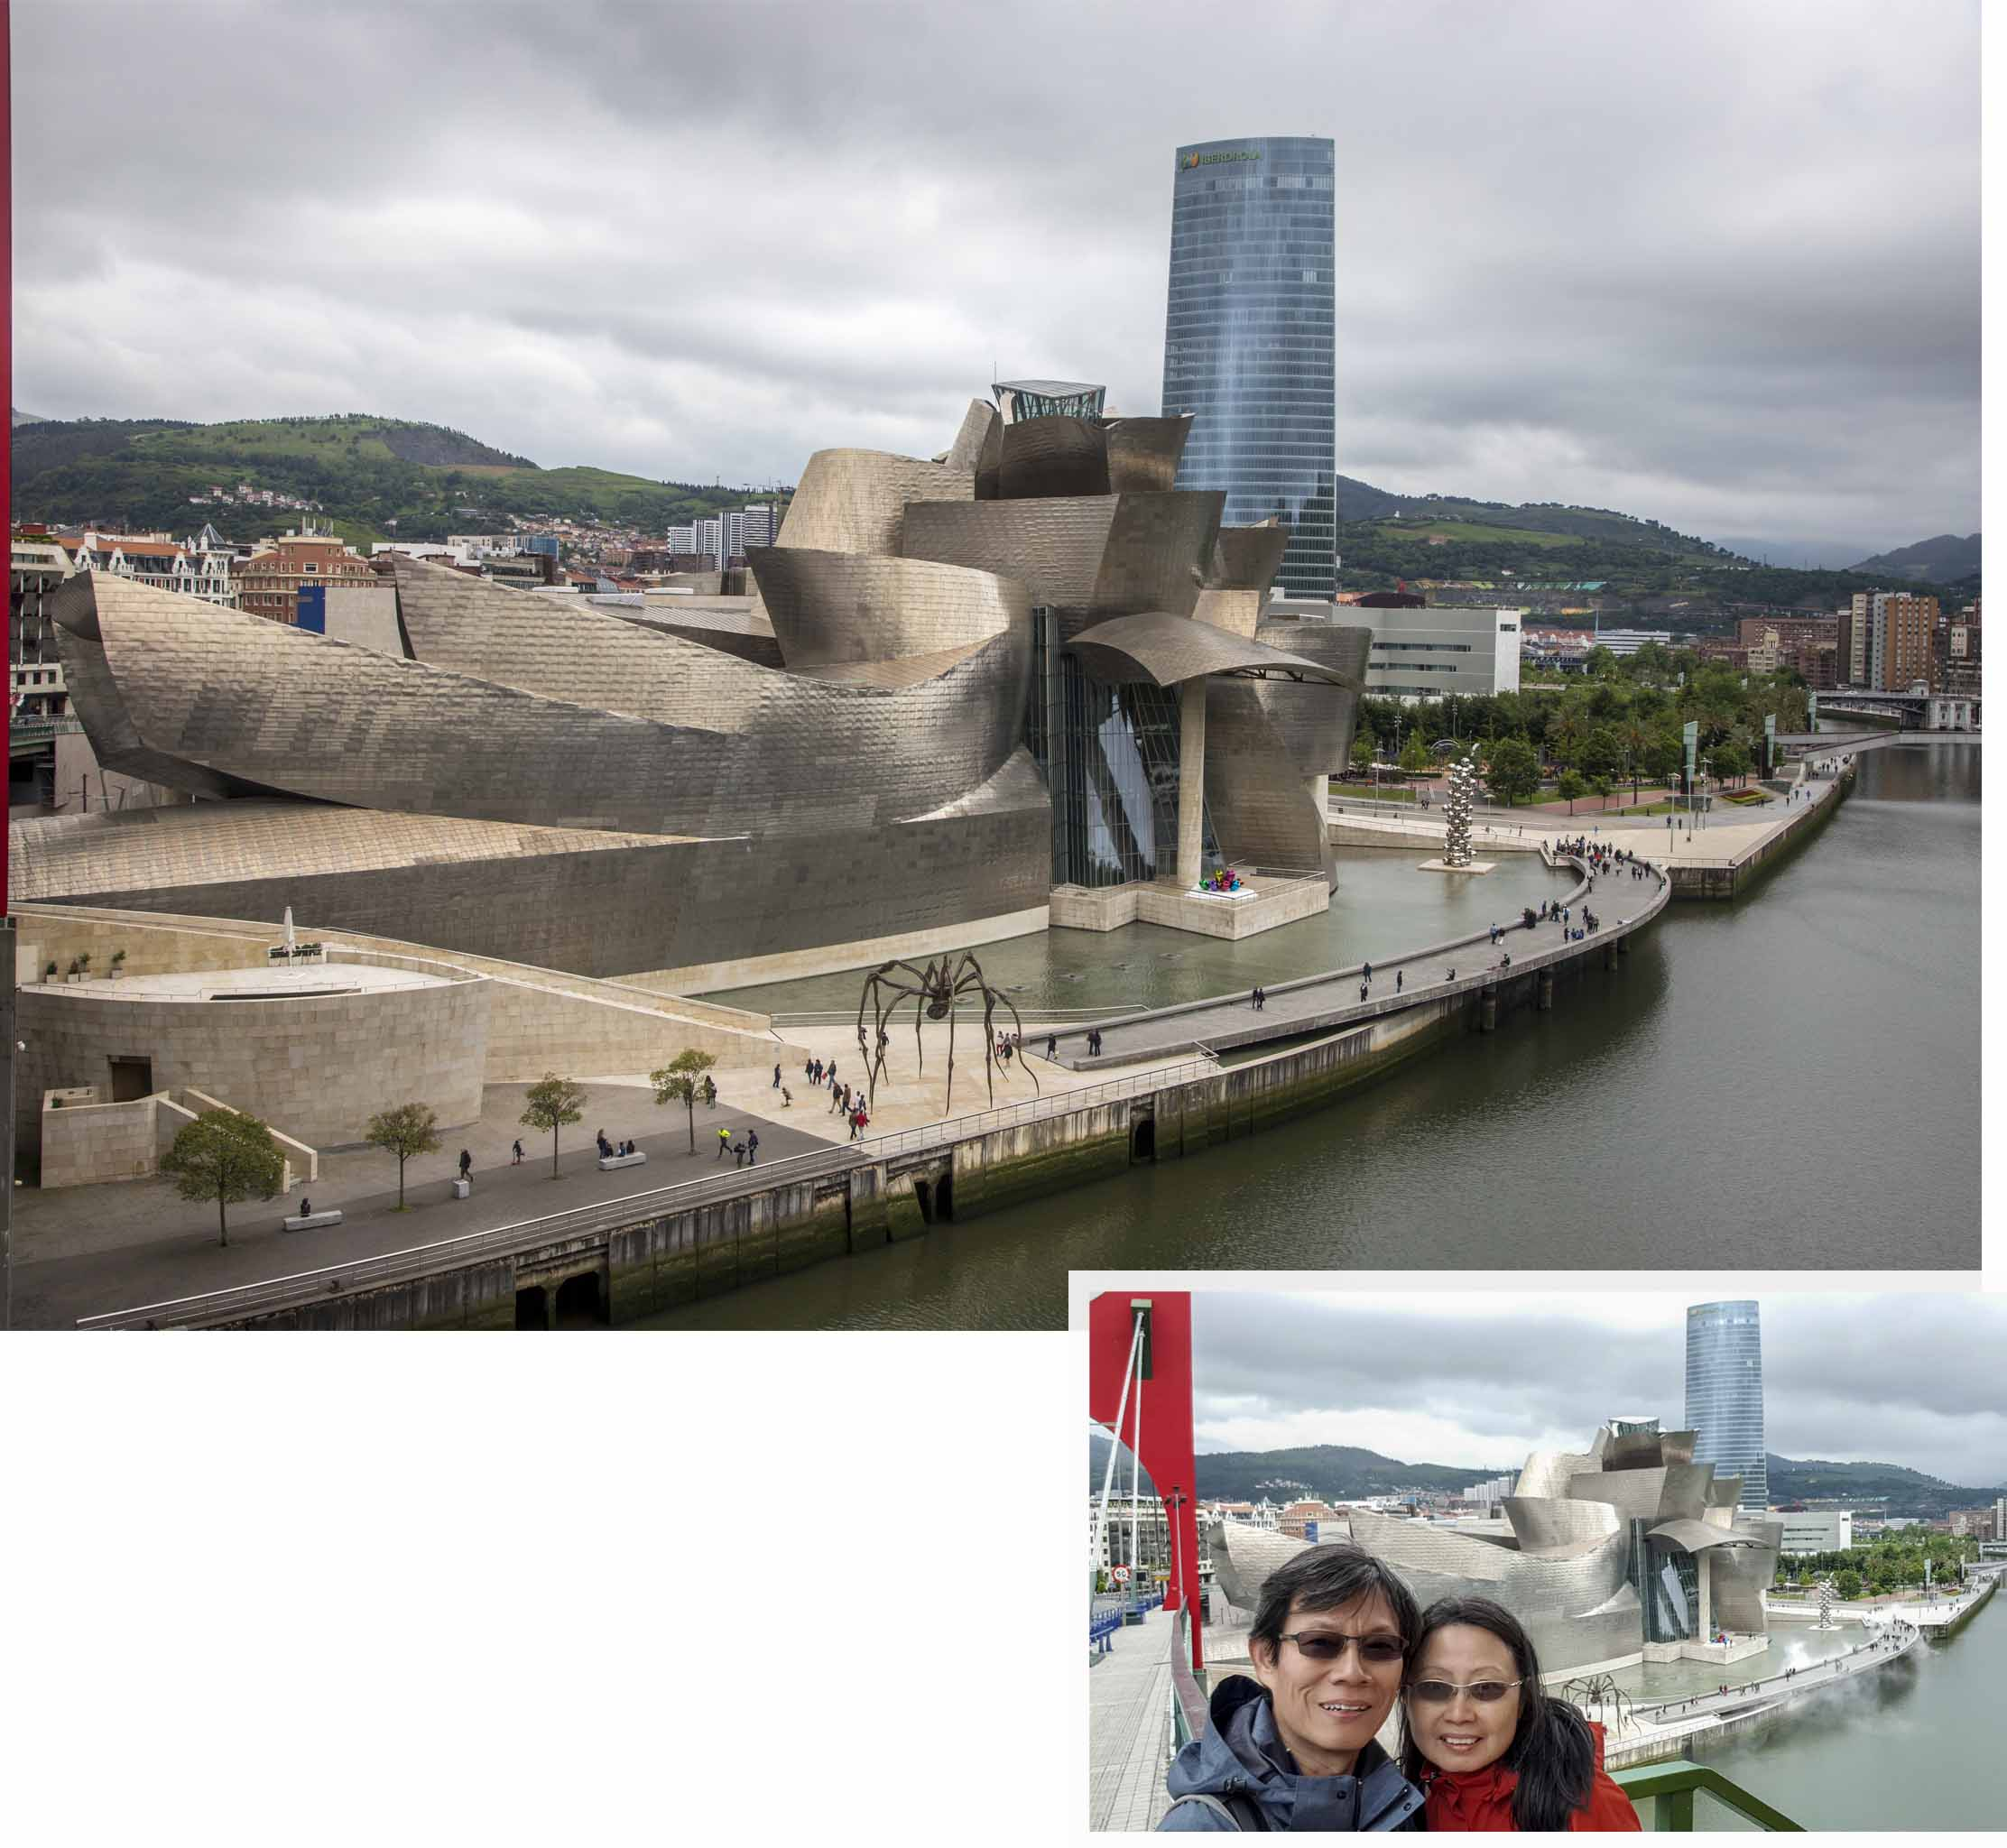 Bilbao Guggenheim Museum as seen from the bridge